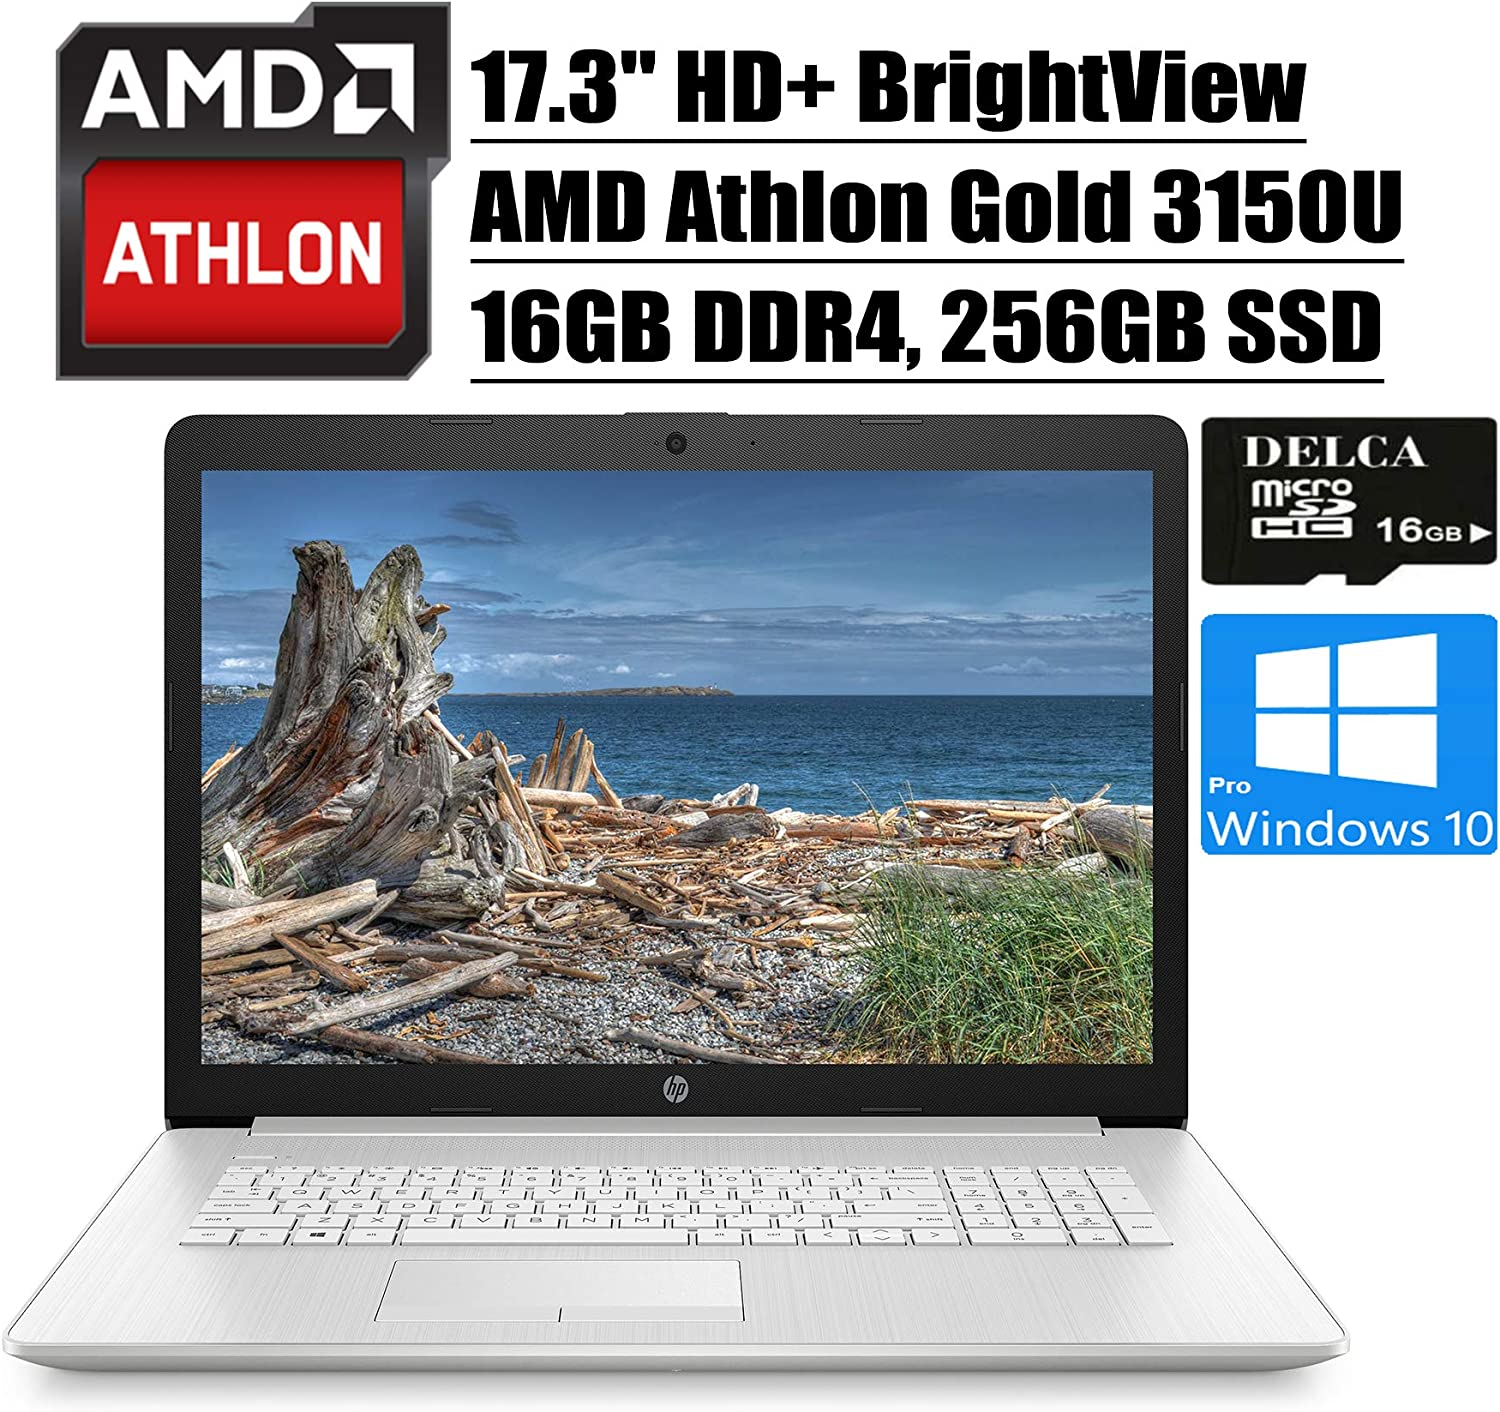 "HP 17 2020 Premium Laptop Computer I 17.3"" HD+ BrightView Display I AMD Athlon Gold 3150U I 16GB DDR4 256GB SSD I AMD Radeon Graphics WiFi DVD HDMI Webcam Win 10 Pro + Delca 16GB Micro SD Card"